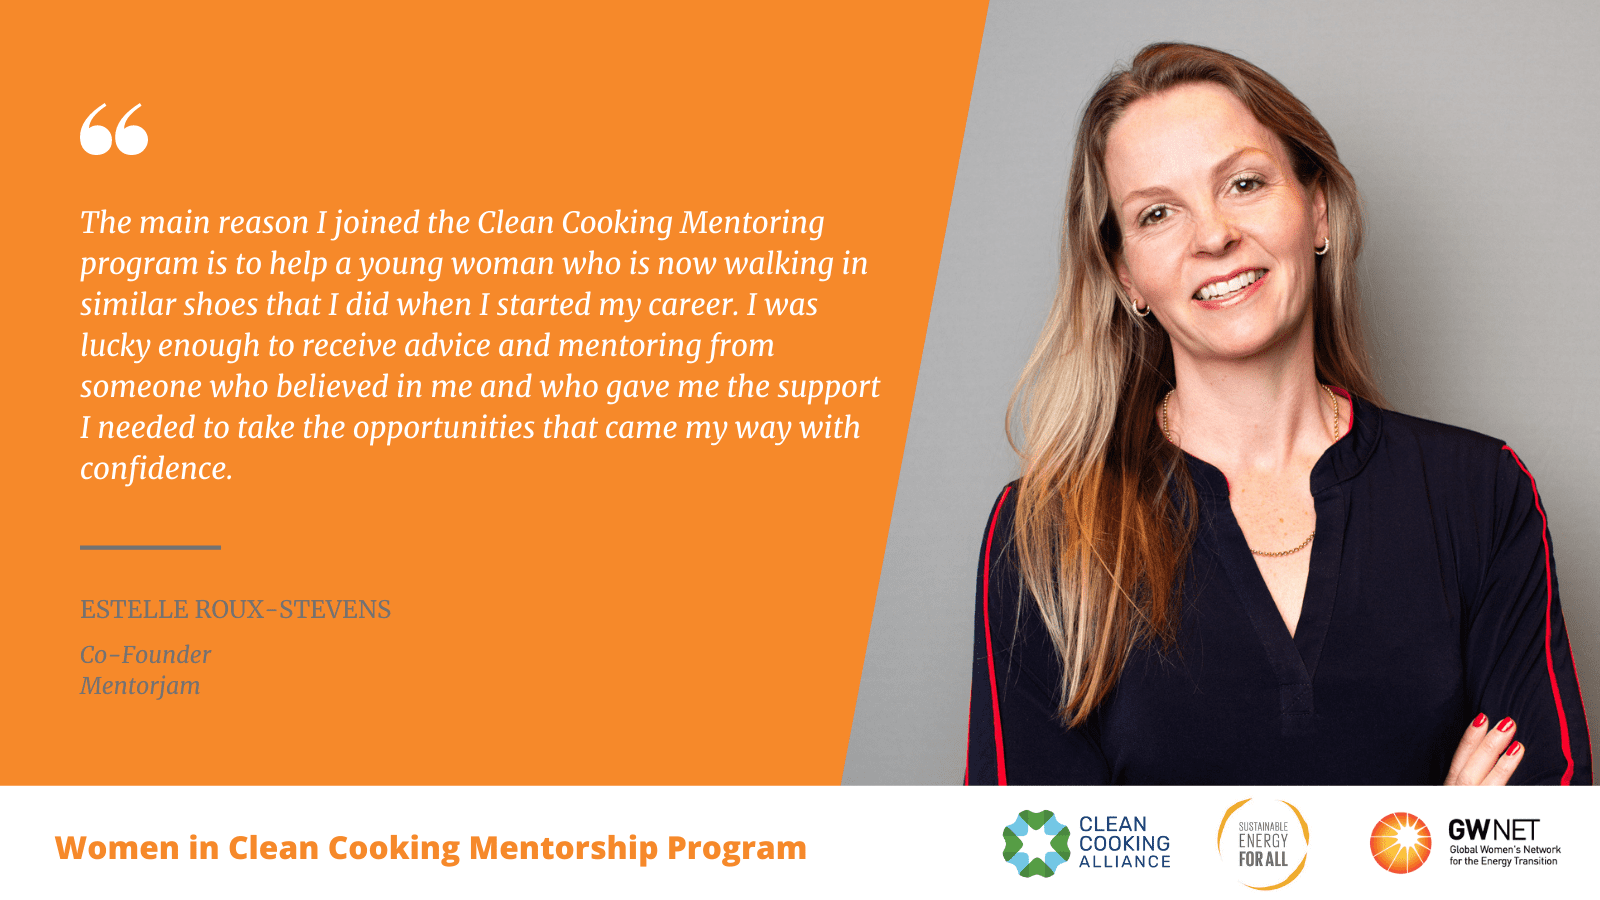 Estelle Roux Stevens WICC Mentorship Program quote